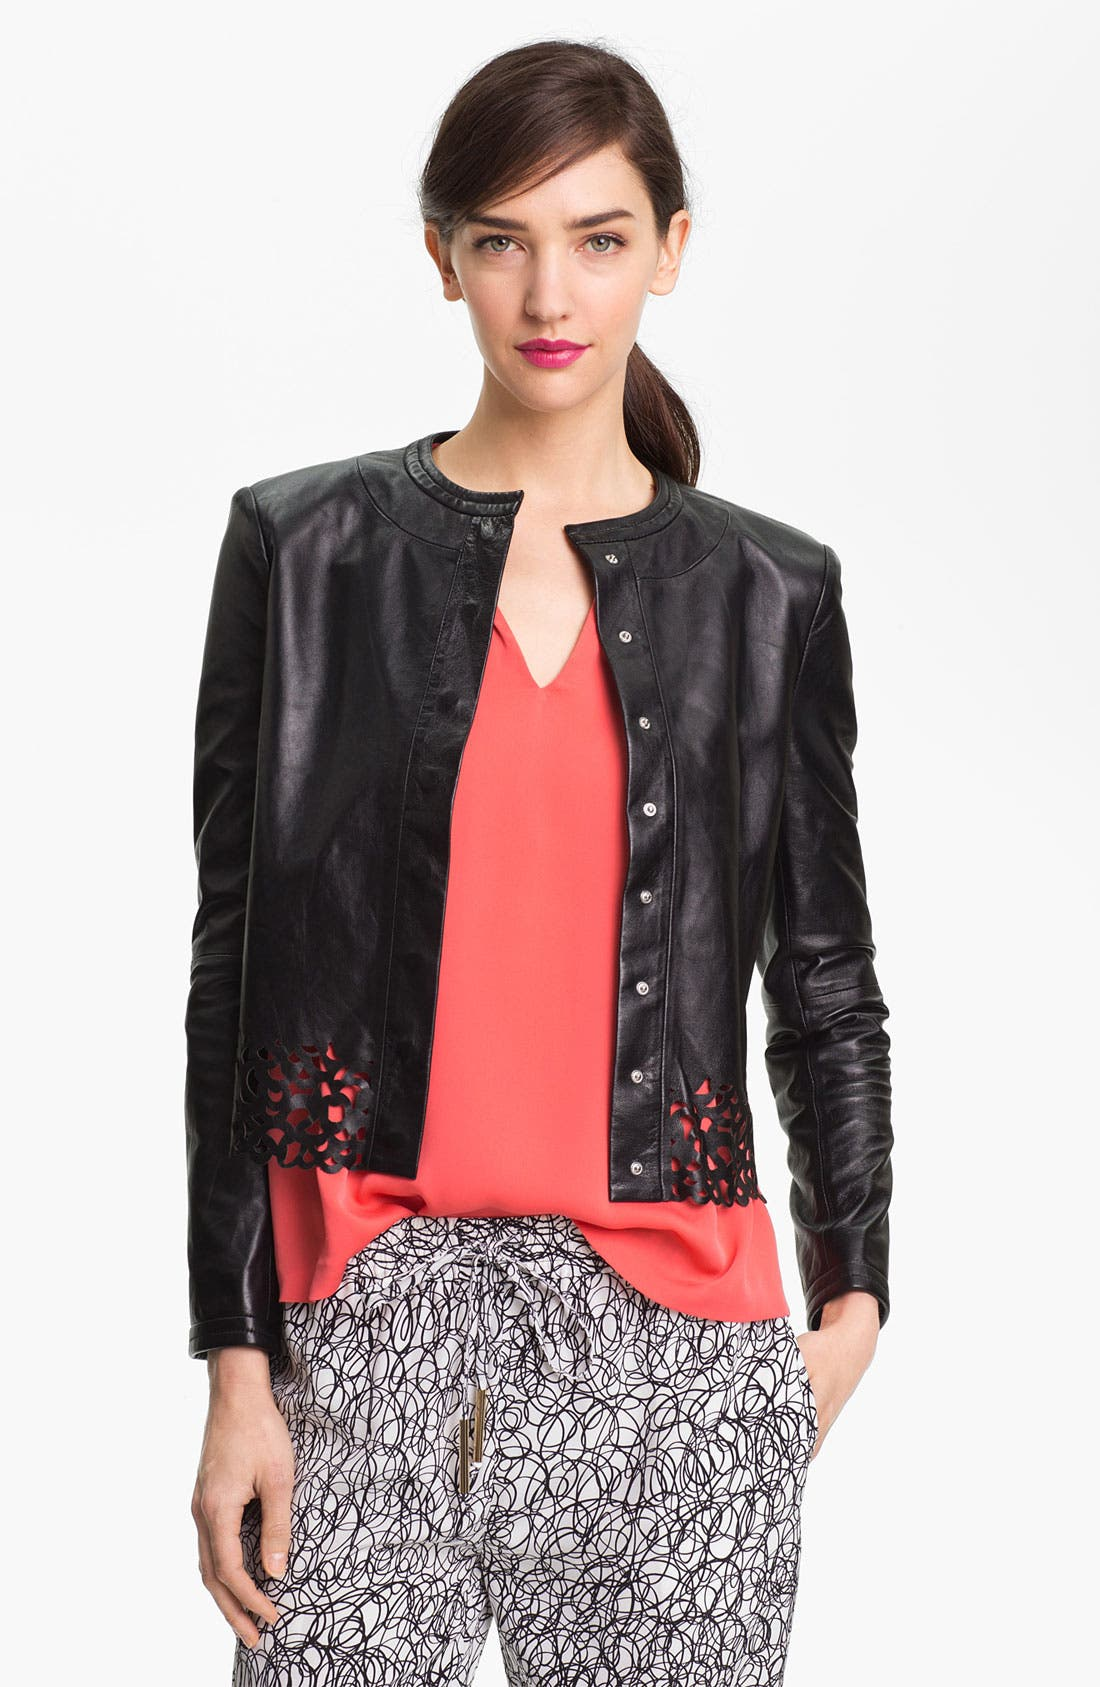 Alternate Image 1 Selected - Diane von Furstenberg 'Merryl' Crop Leather Jacket